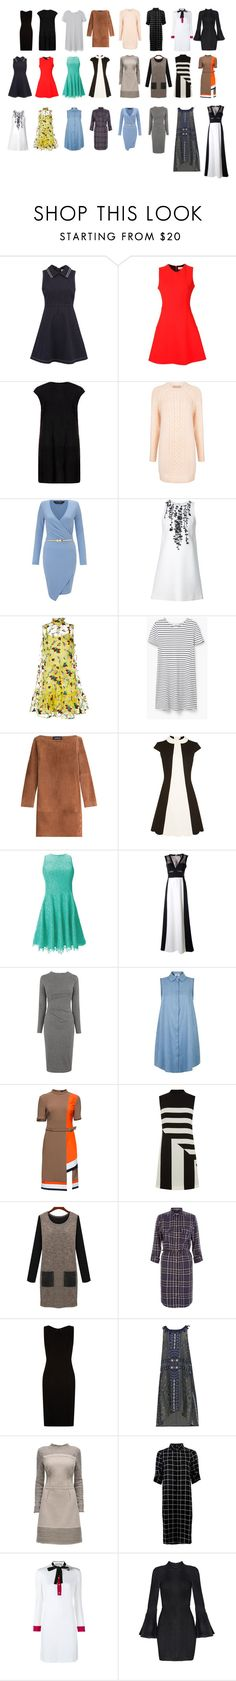 Rectangle Body Shape - Dresses by pennyrdunning on Polyvore featuring Erdem, Victoria Beckham, Vanessa Seward, Gucci, BCBGMAXAZRIA, Sea, New York, BOSS Hugo Boss, Lattori, RED Valentino and MuuBaa